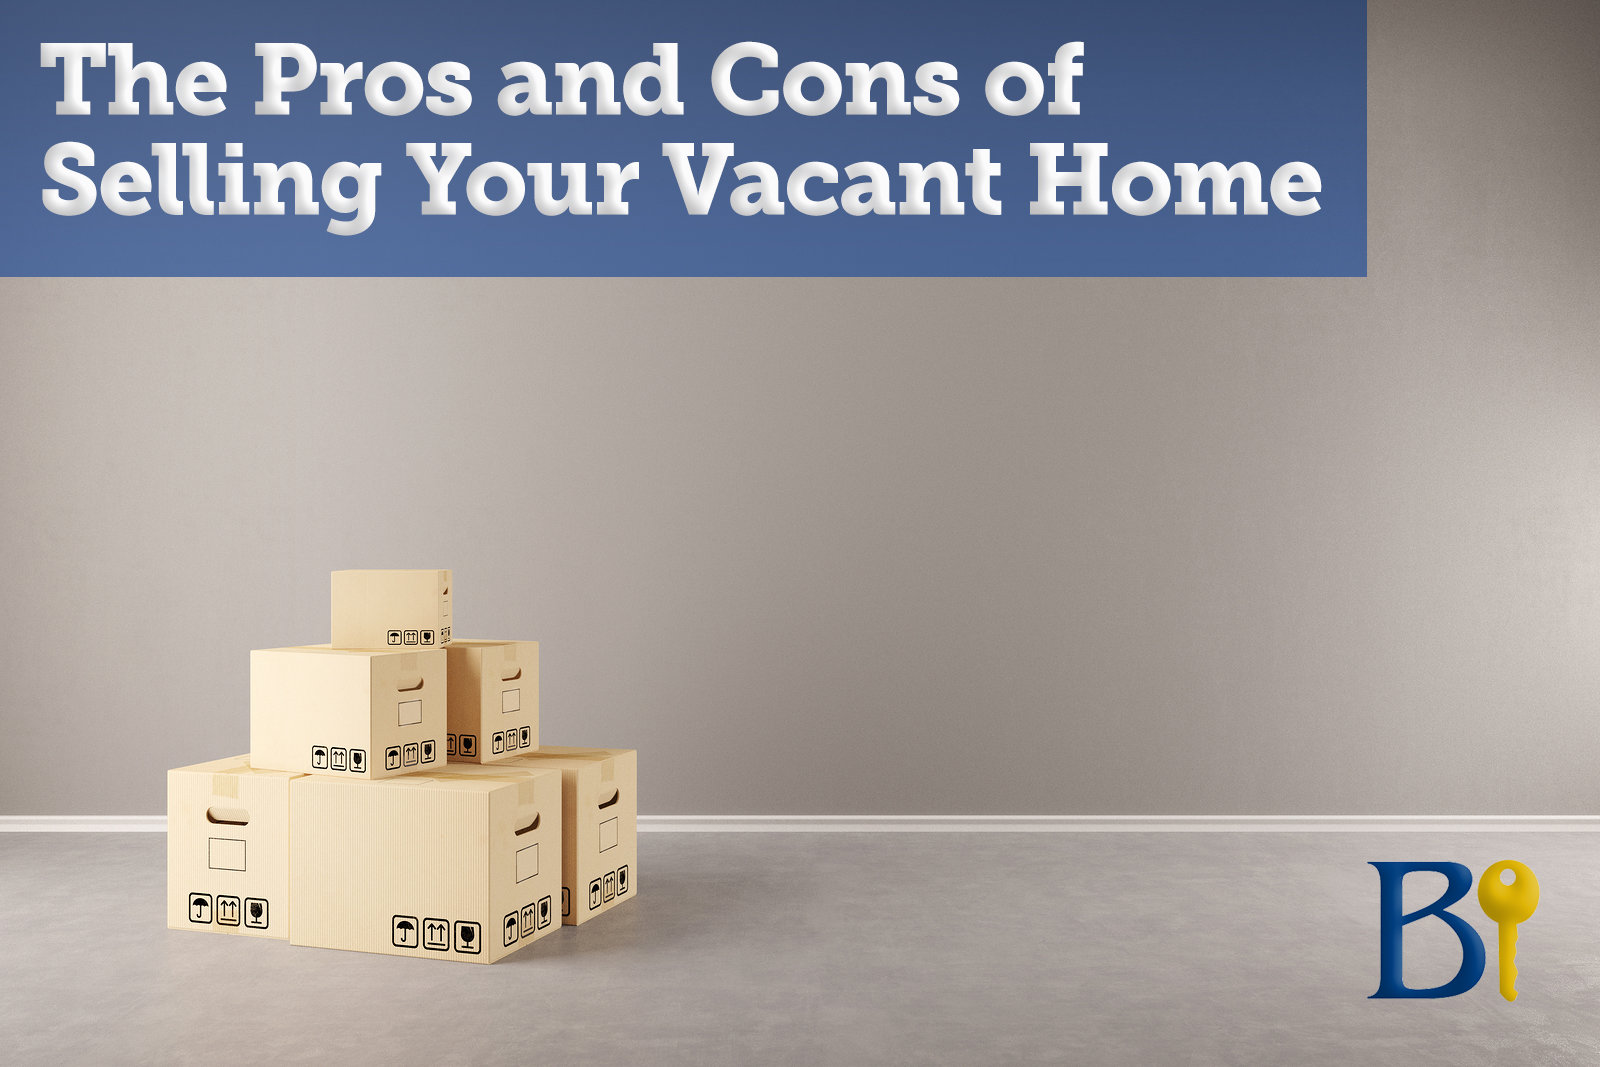 Pros and Cons of Selling Your Vacant Home